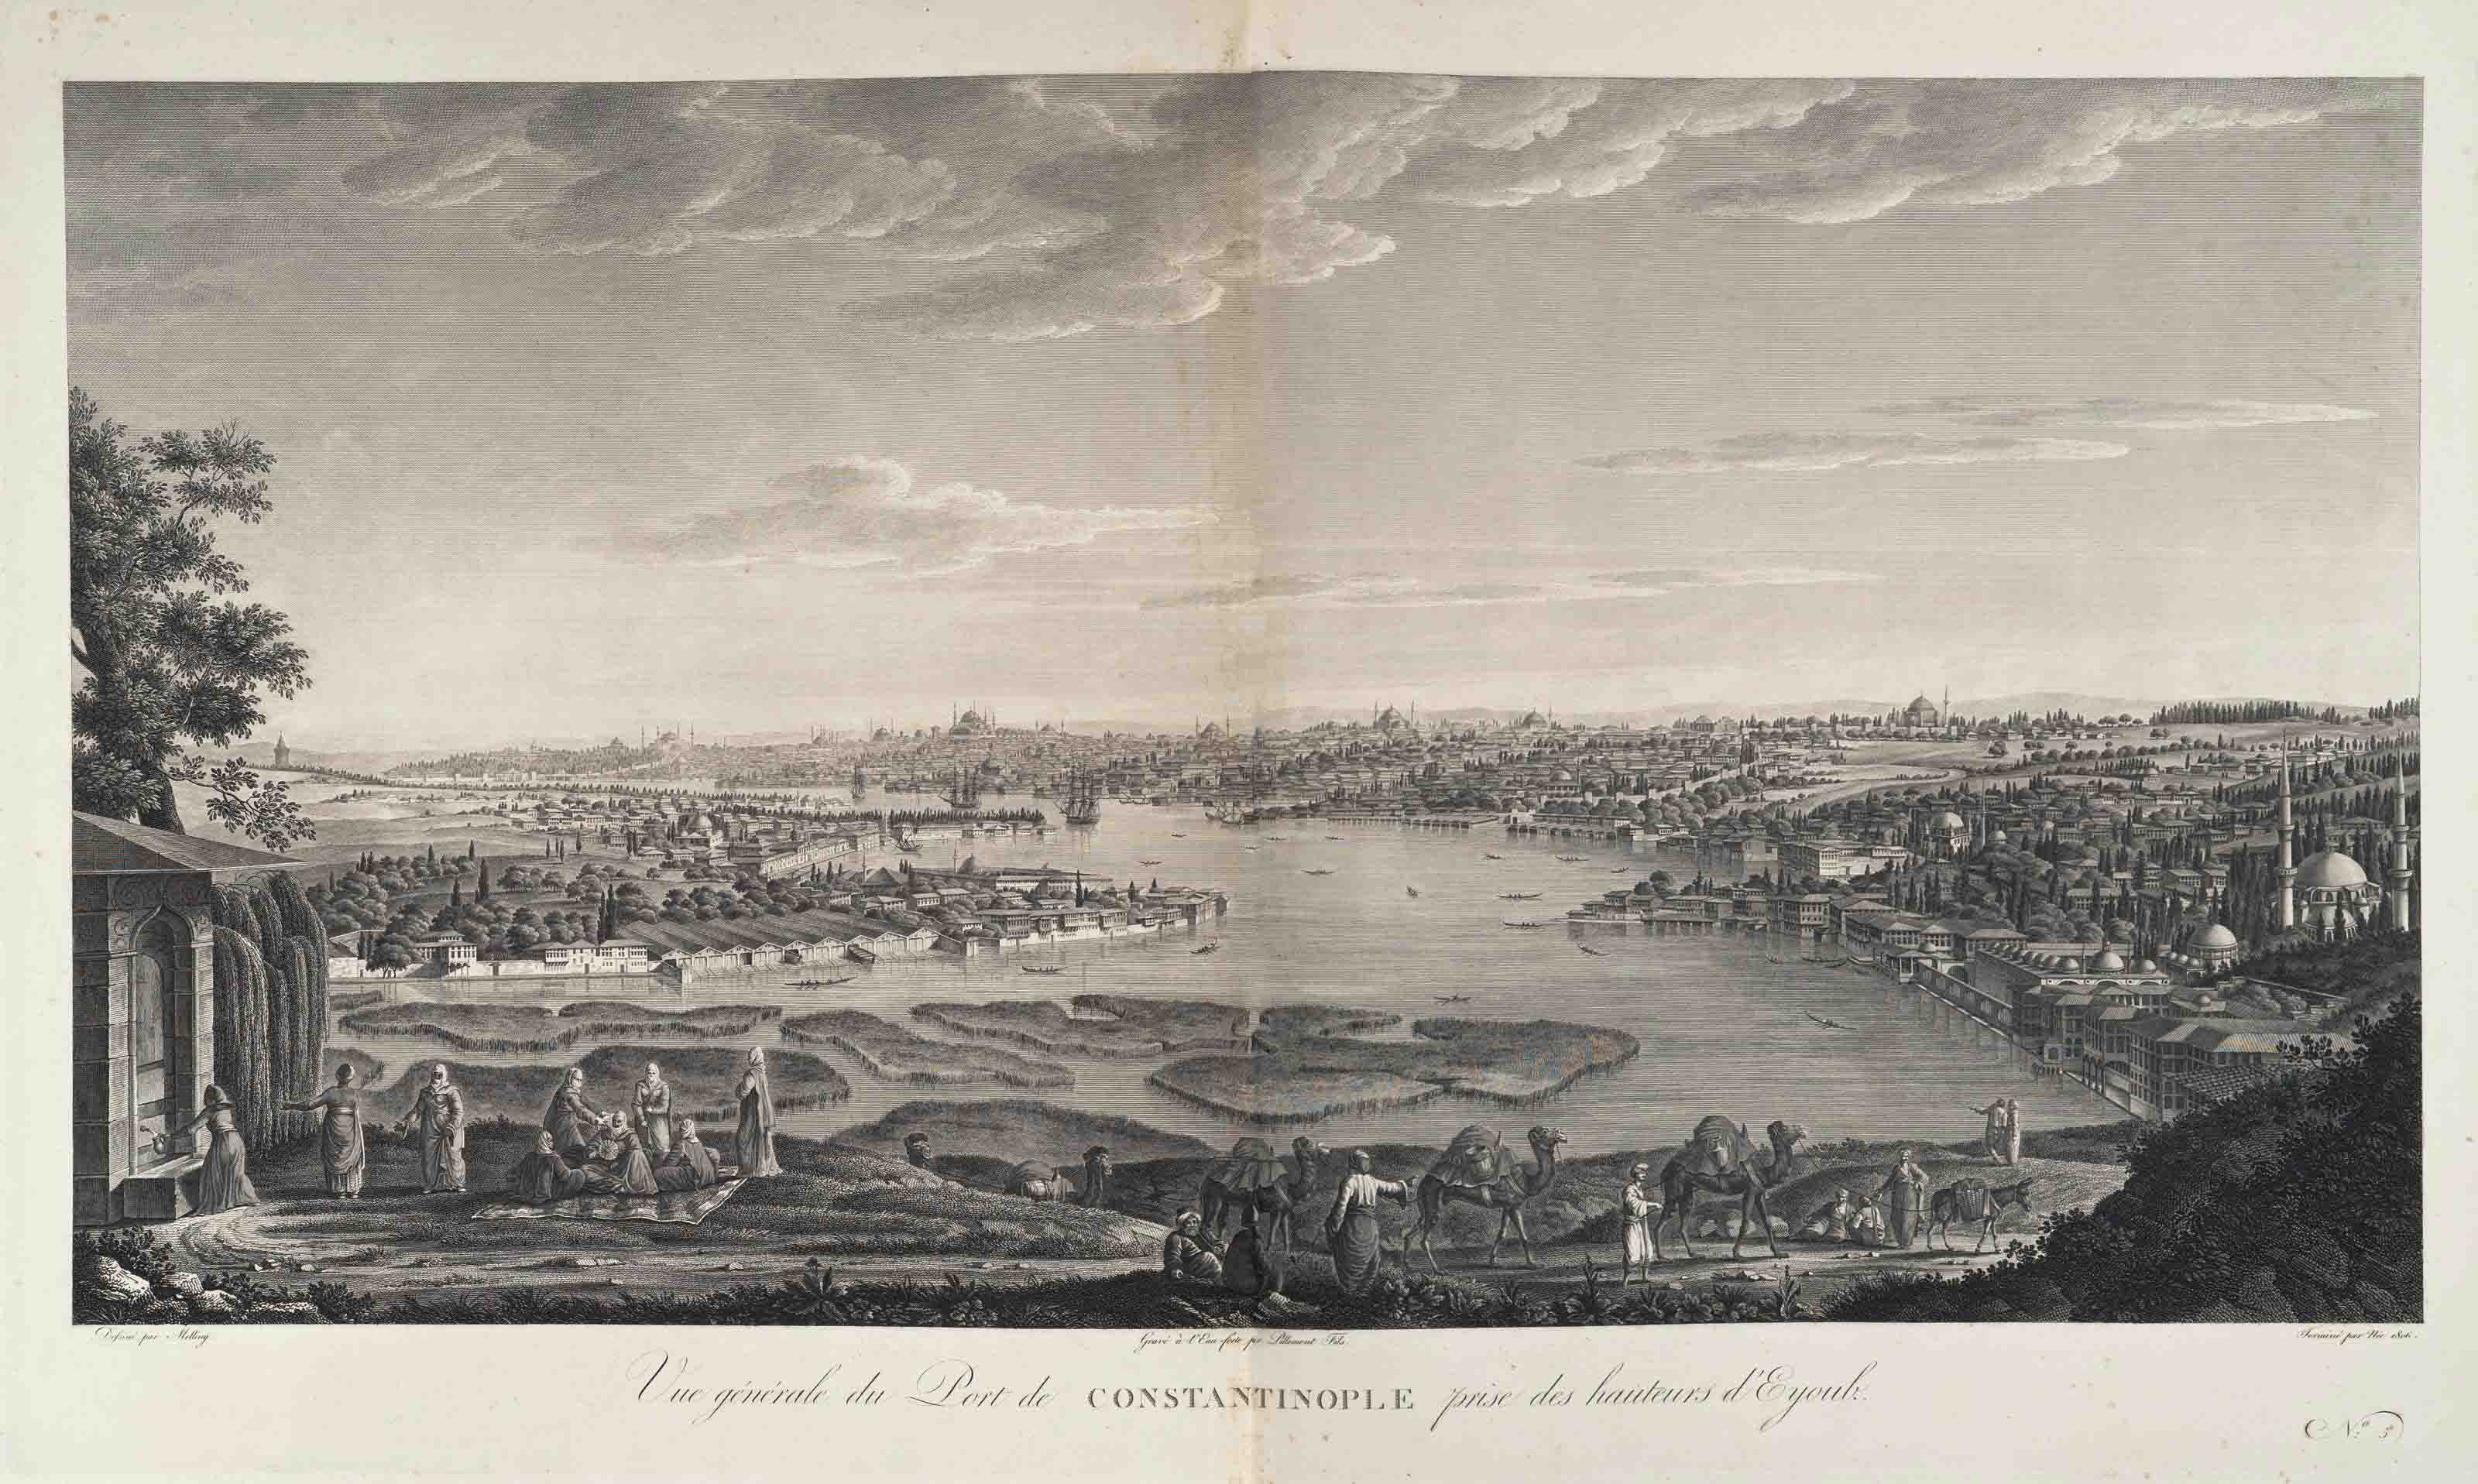 MELLING, Antoine Ignace (1763-1831). Voyage pittoresque de Constantinople et des rives du Bosphore. Paris, Strassburg and London: Treuttel et Würtz, [1809]-1819. 3 vols., 2° (656 x 530mm). Pagination: [vi], 10, [130]. Text vol. with half-title, engraved portrait frontispiece of Selim III after Lemoine, and title with chromolithographed tugra. Other vols. with engraved title, 48 double-page etched plates after Melling, some before numbers, and 3 double-page engraved maps. (Plates all on new mounts, some with light spotting to engraved area, more persistent spotting at plate margins, occasional slight staining or soiling in gutter area, plate 37 with corner torn away and closed tears in gutter, another plate with long closed tear at lower margin, text vol. affected by spotting and browning, title heavily browned.) Modern green half calf and marbled boards, gilt edges.